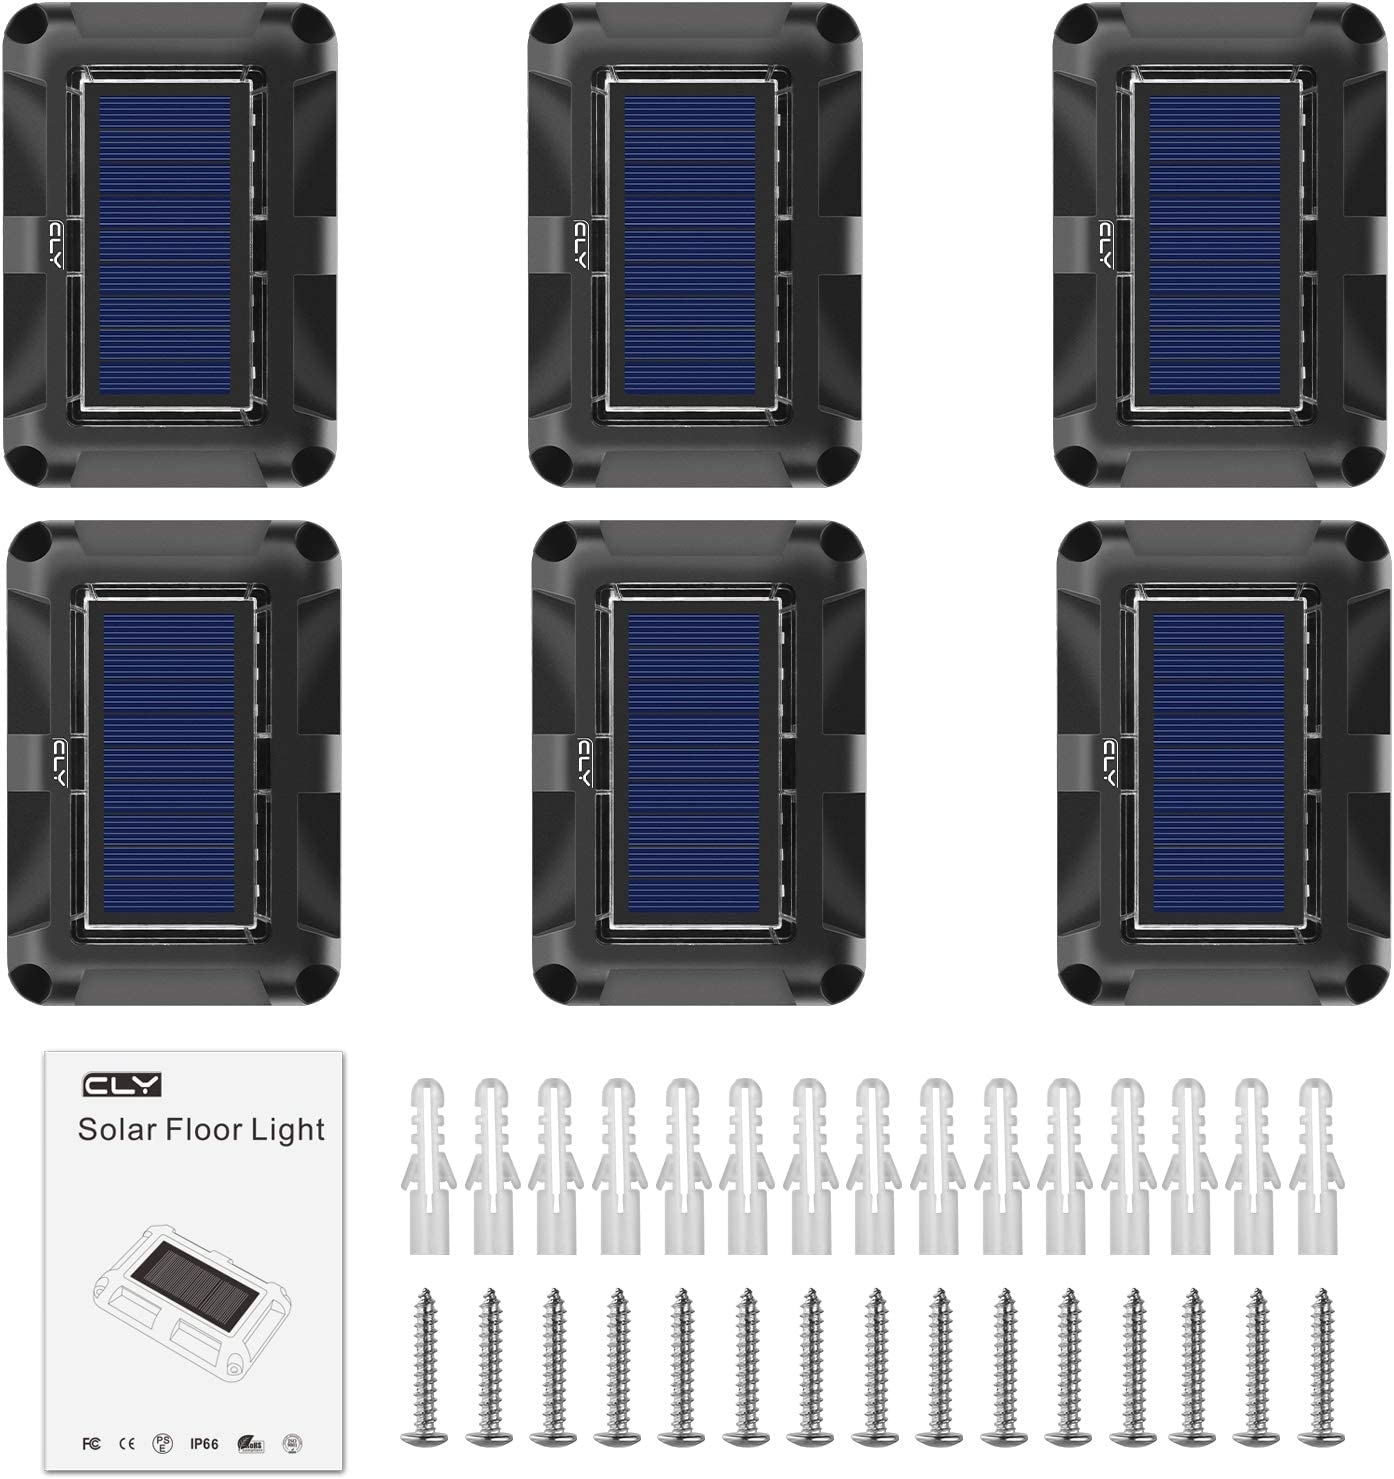 CLY Solar Decking Light,Solar Floor Light,IP67 Waterproof Outdoor Solar Ground Light,Scratch Resistant LED Solar Path Light for Lawn Pathway Patio Garden Pond Step Driveway,Daylight White,1 pcs